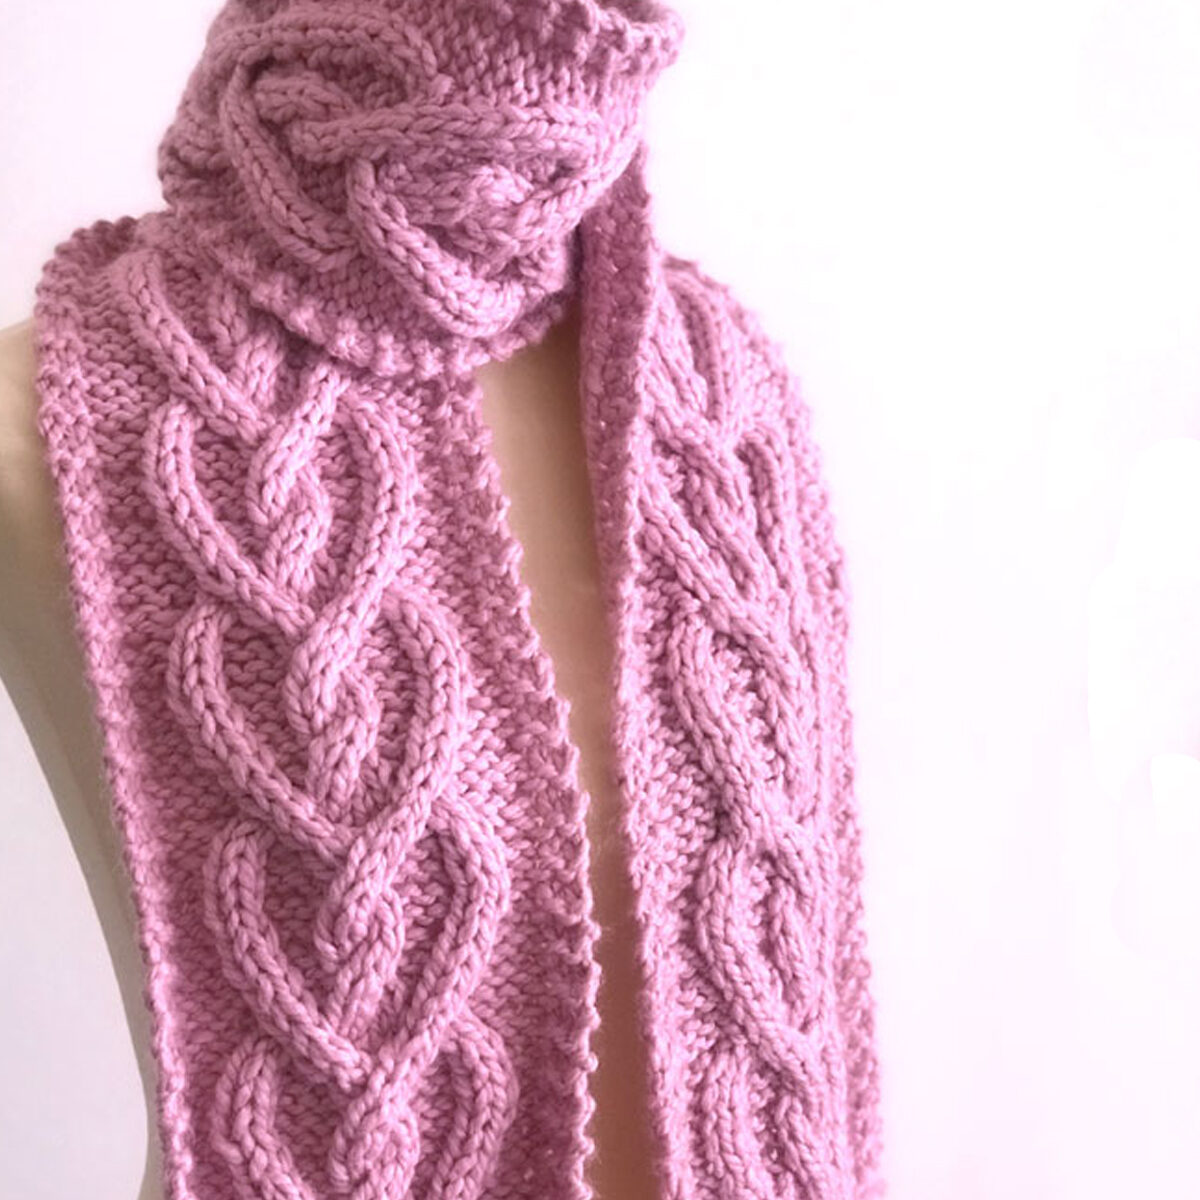 Heart Cable Knit Scarf in Pink Wool Yarn on Dress Form